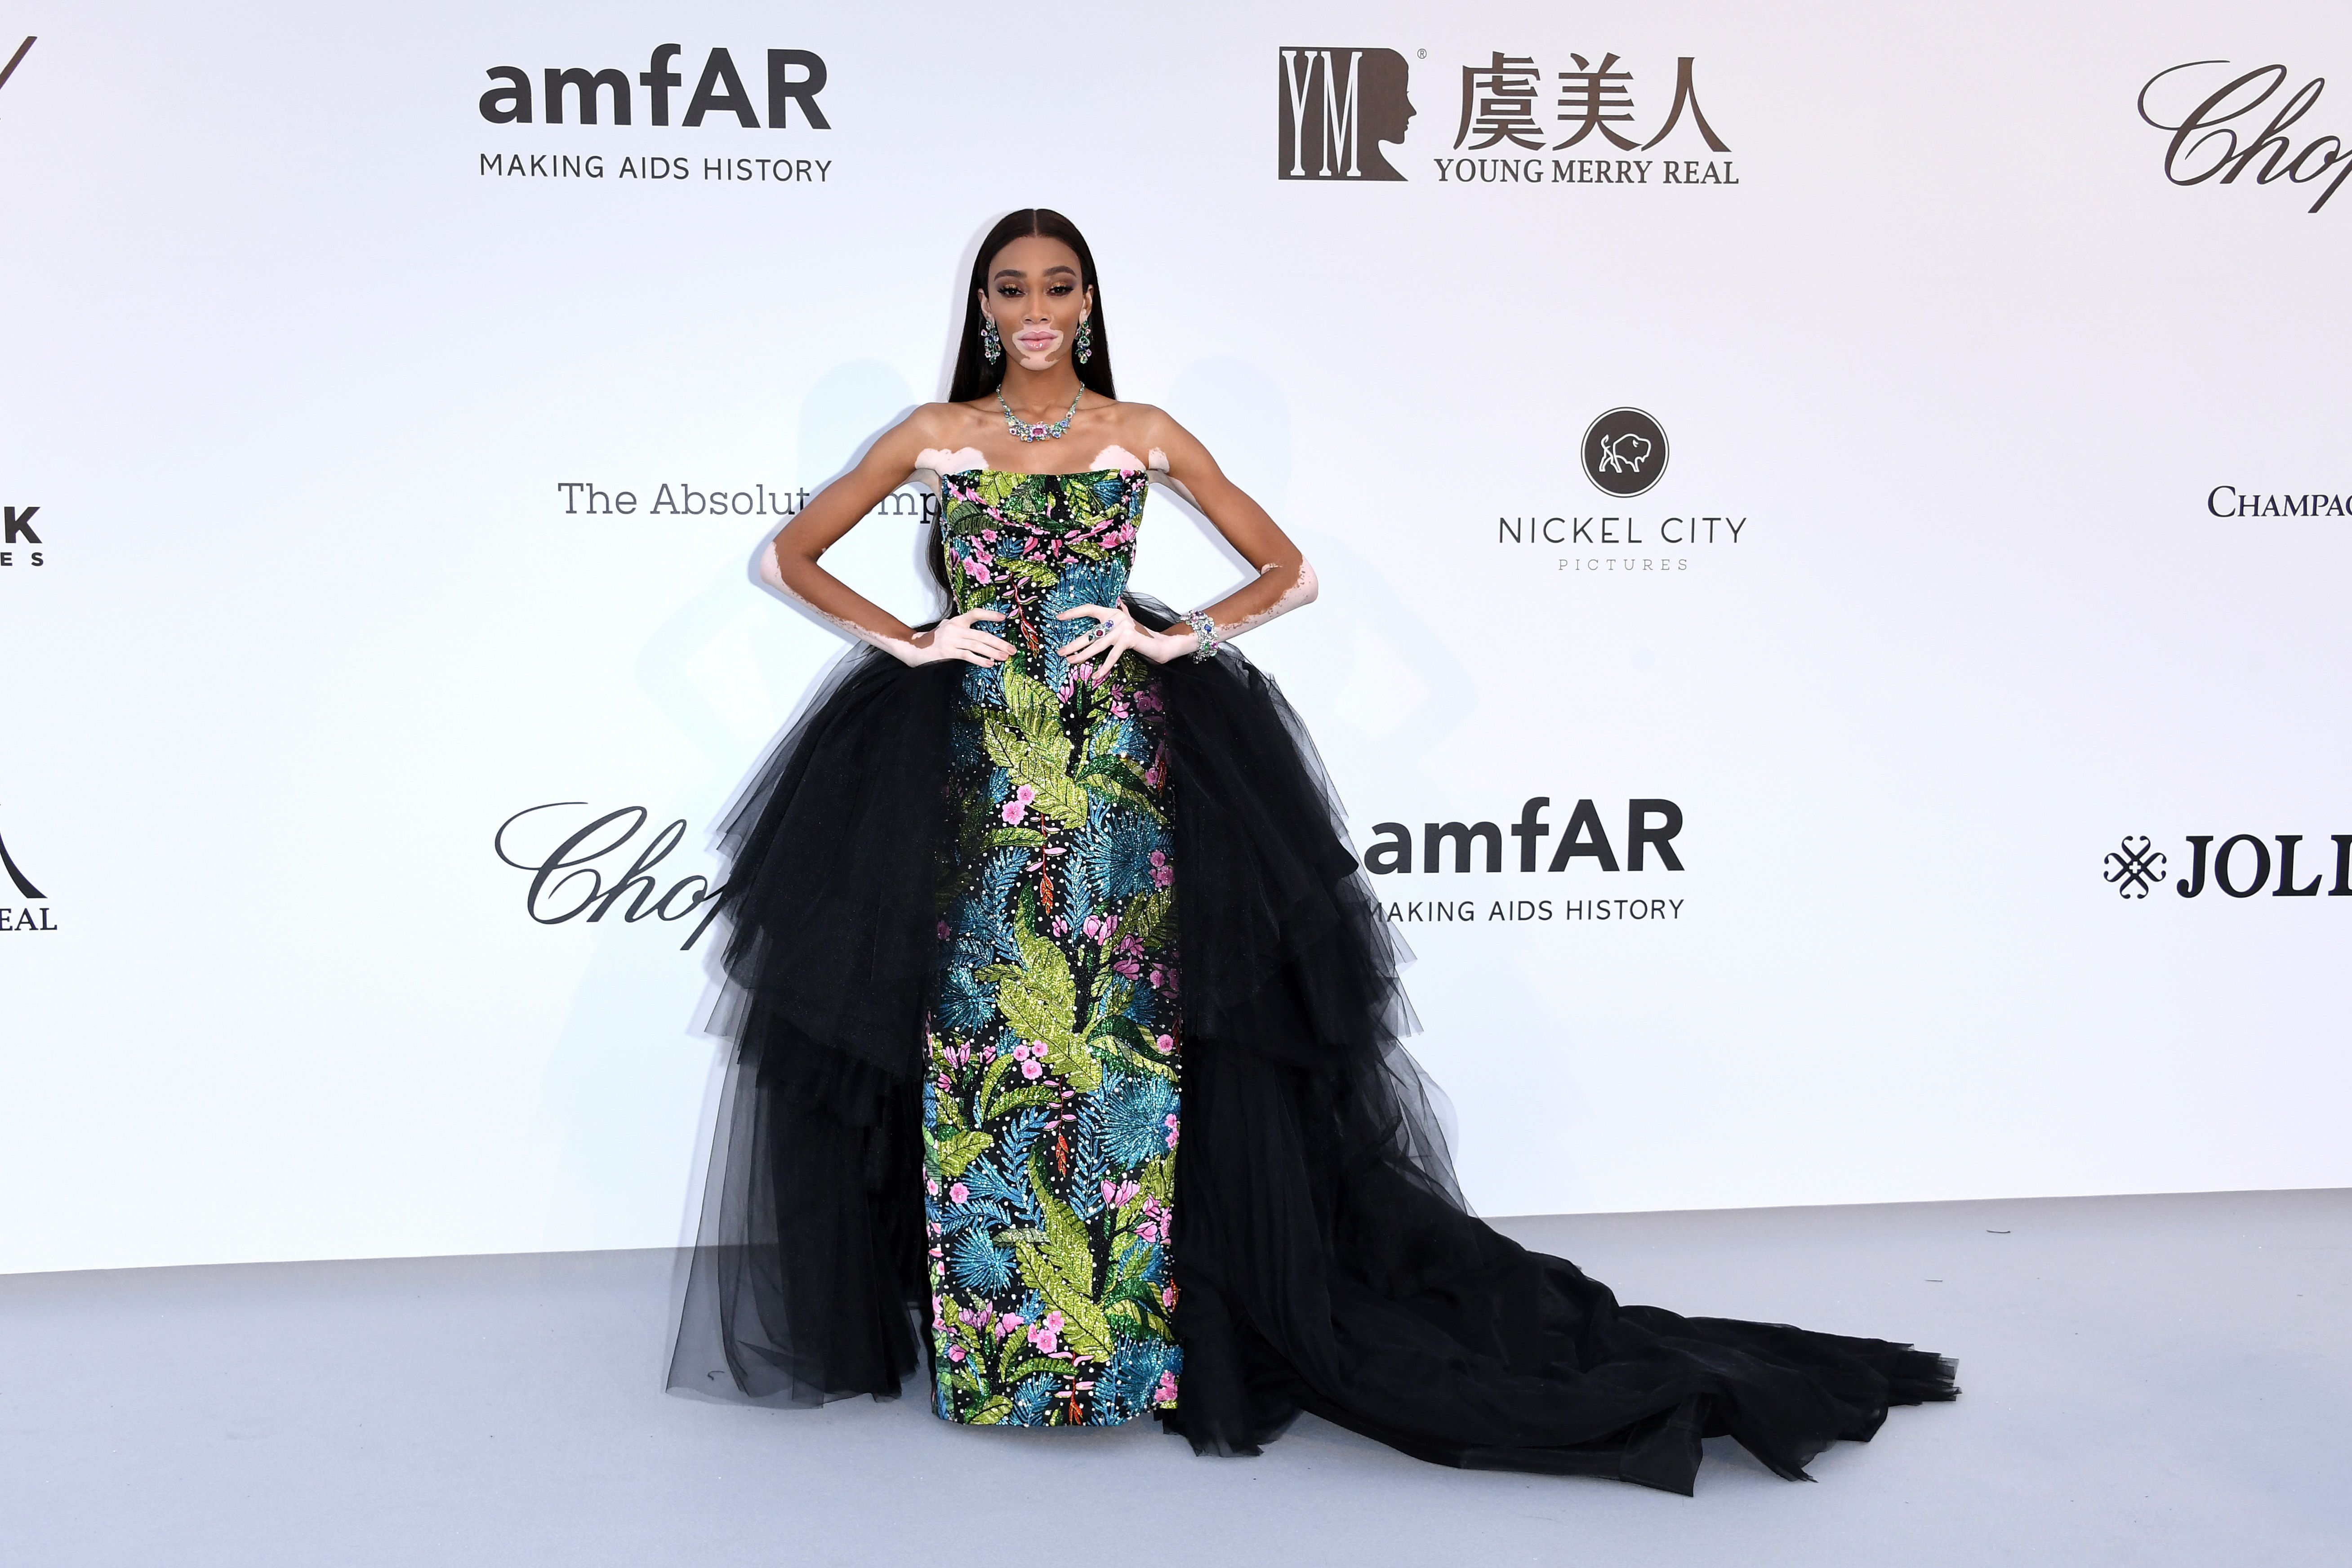 Winnie Harlow In a strapless blue and green print dress with a tulle black skirt.